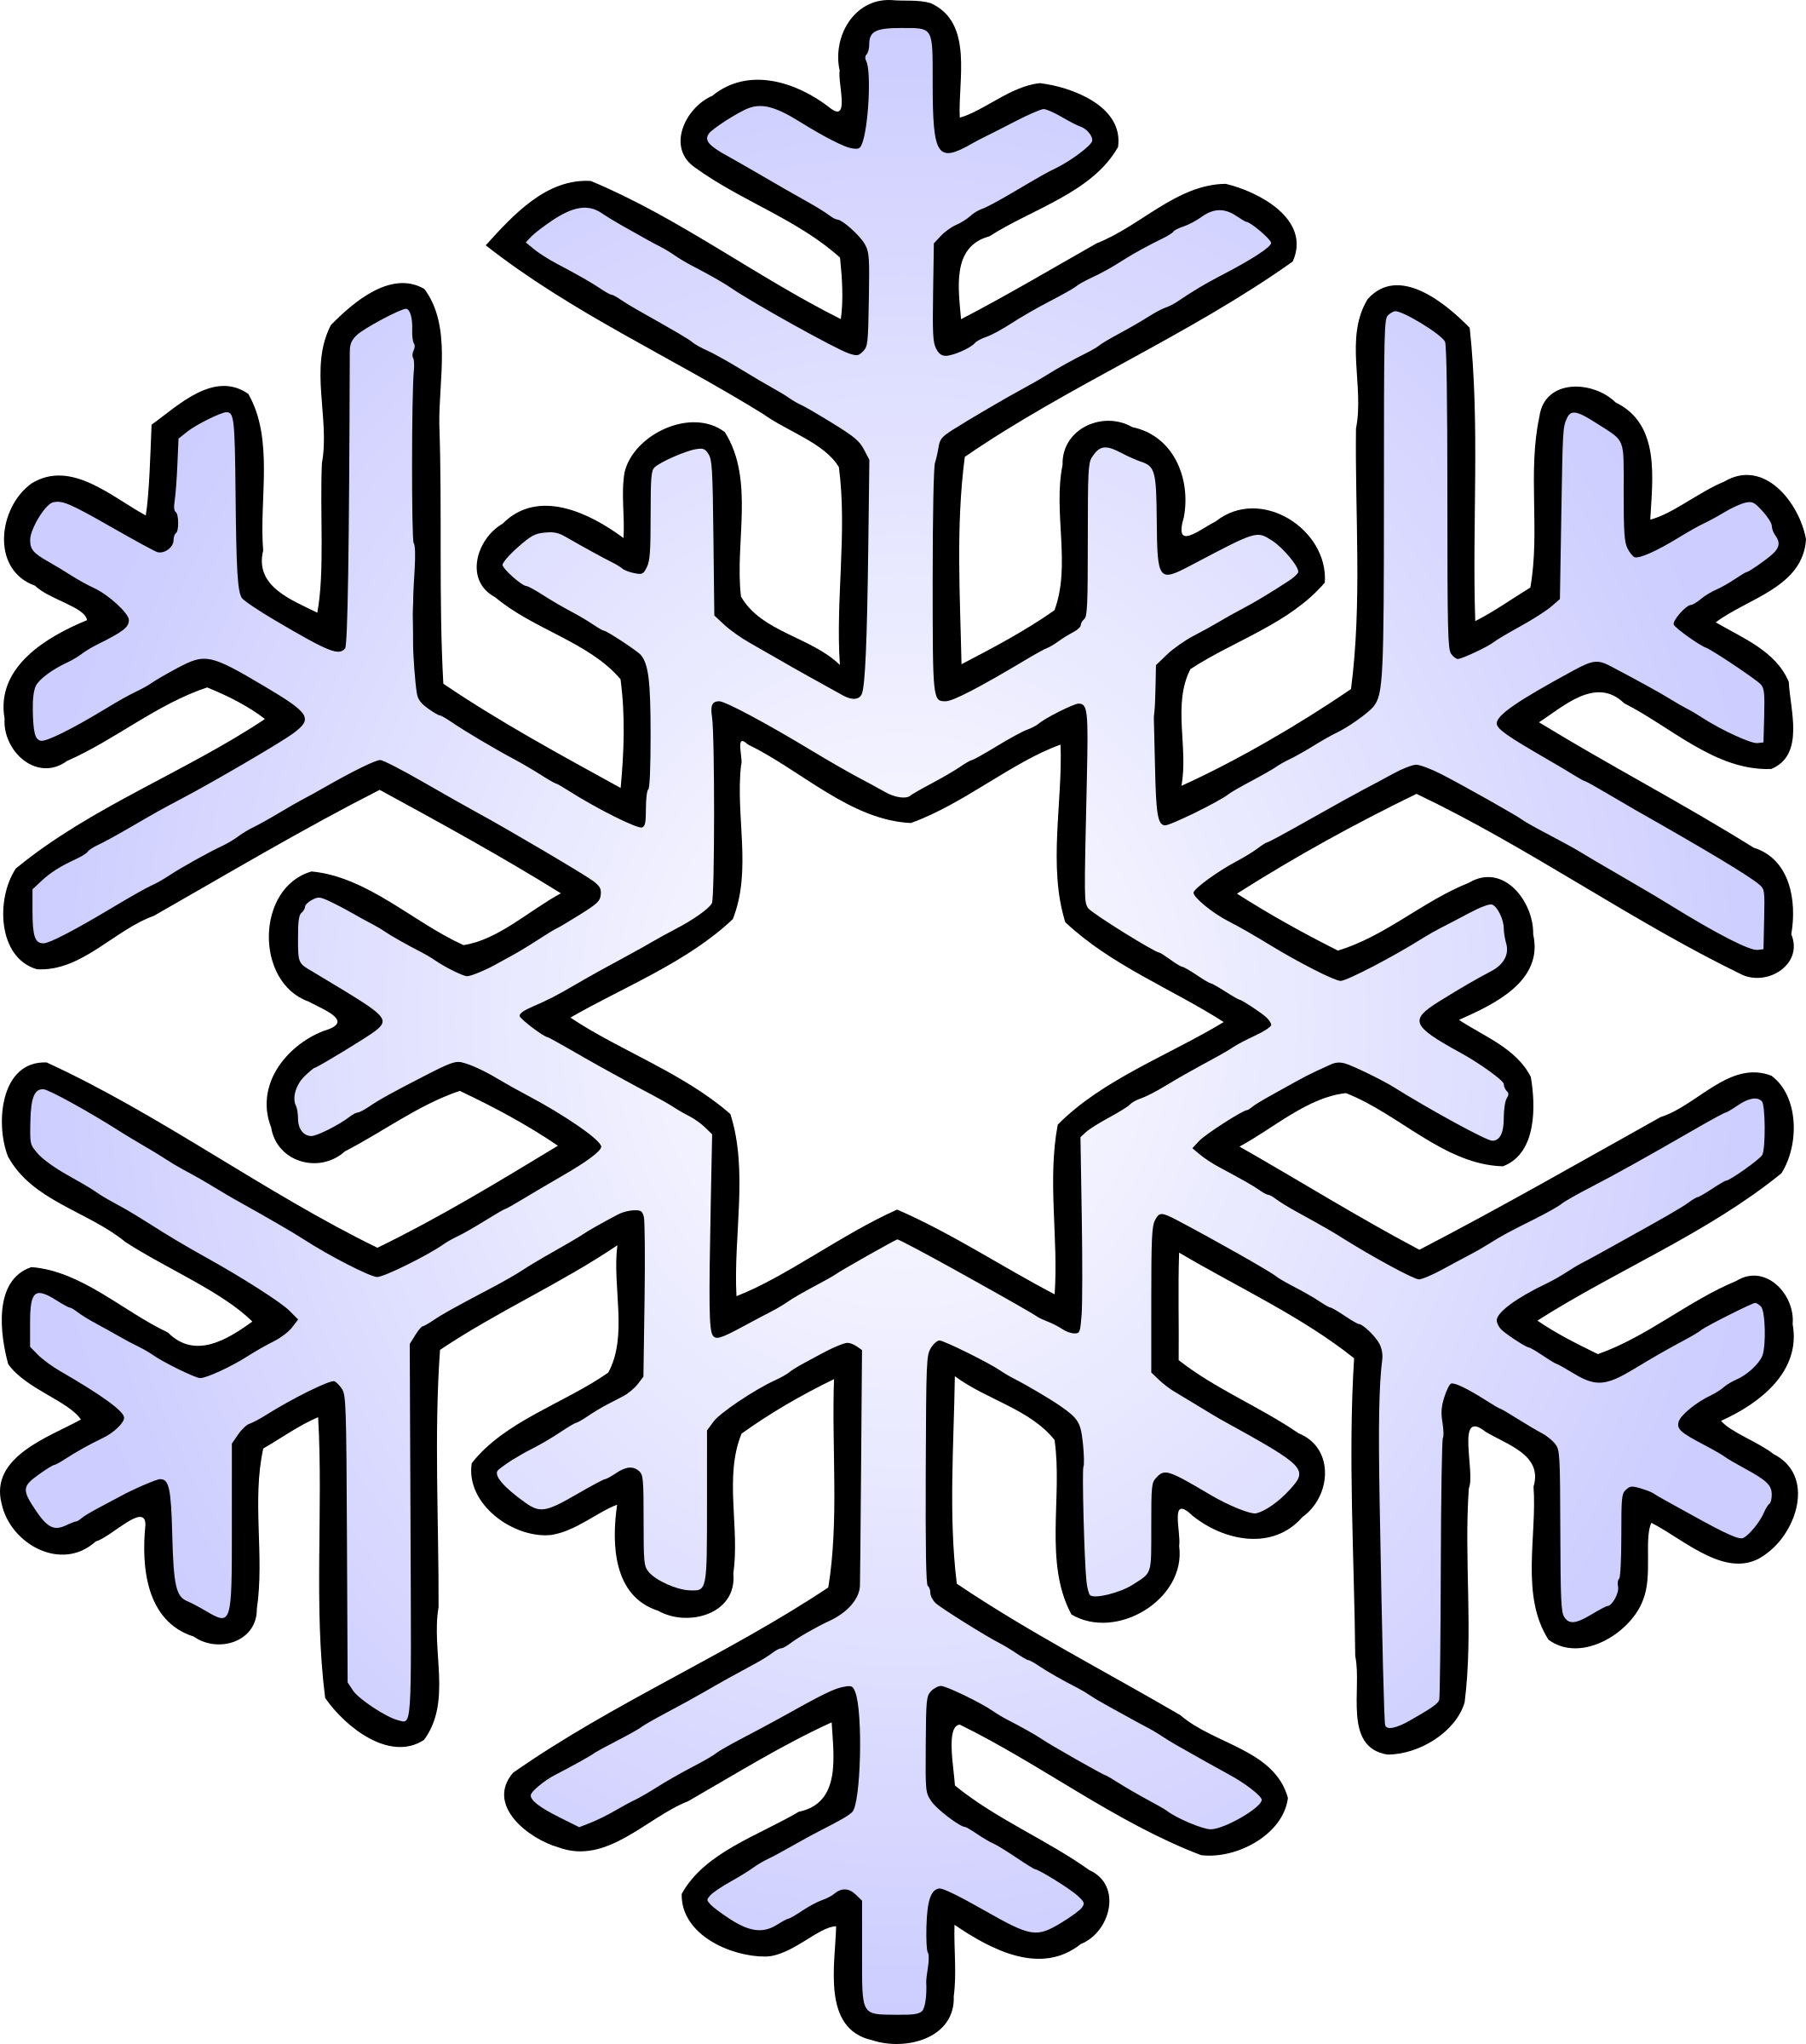 Snowflake clipart sketch image free library Snowflake Clipart Free at GetDrawings.com | Free for personal use ... image free library